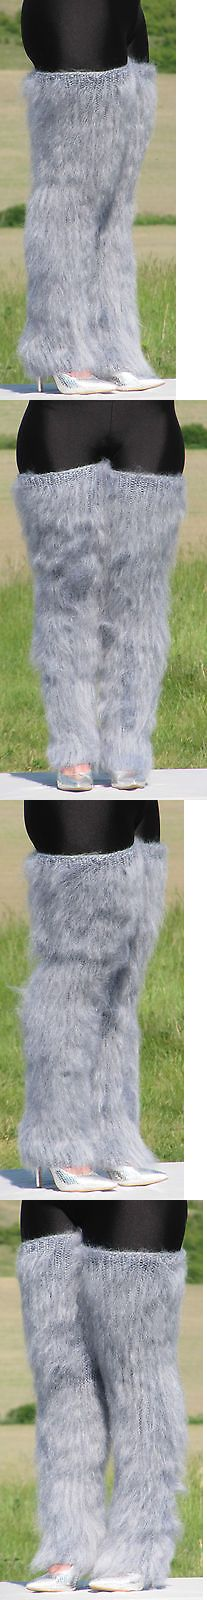 Leg Warmers 163587: Mohair Hand Knitted Grey Melange Gaiters Legwarmers Legging Spats Unisex Fluffy -> BUY IT NOW ONLY: $59.99 on eBay!